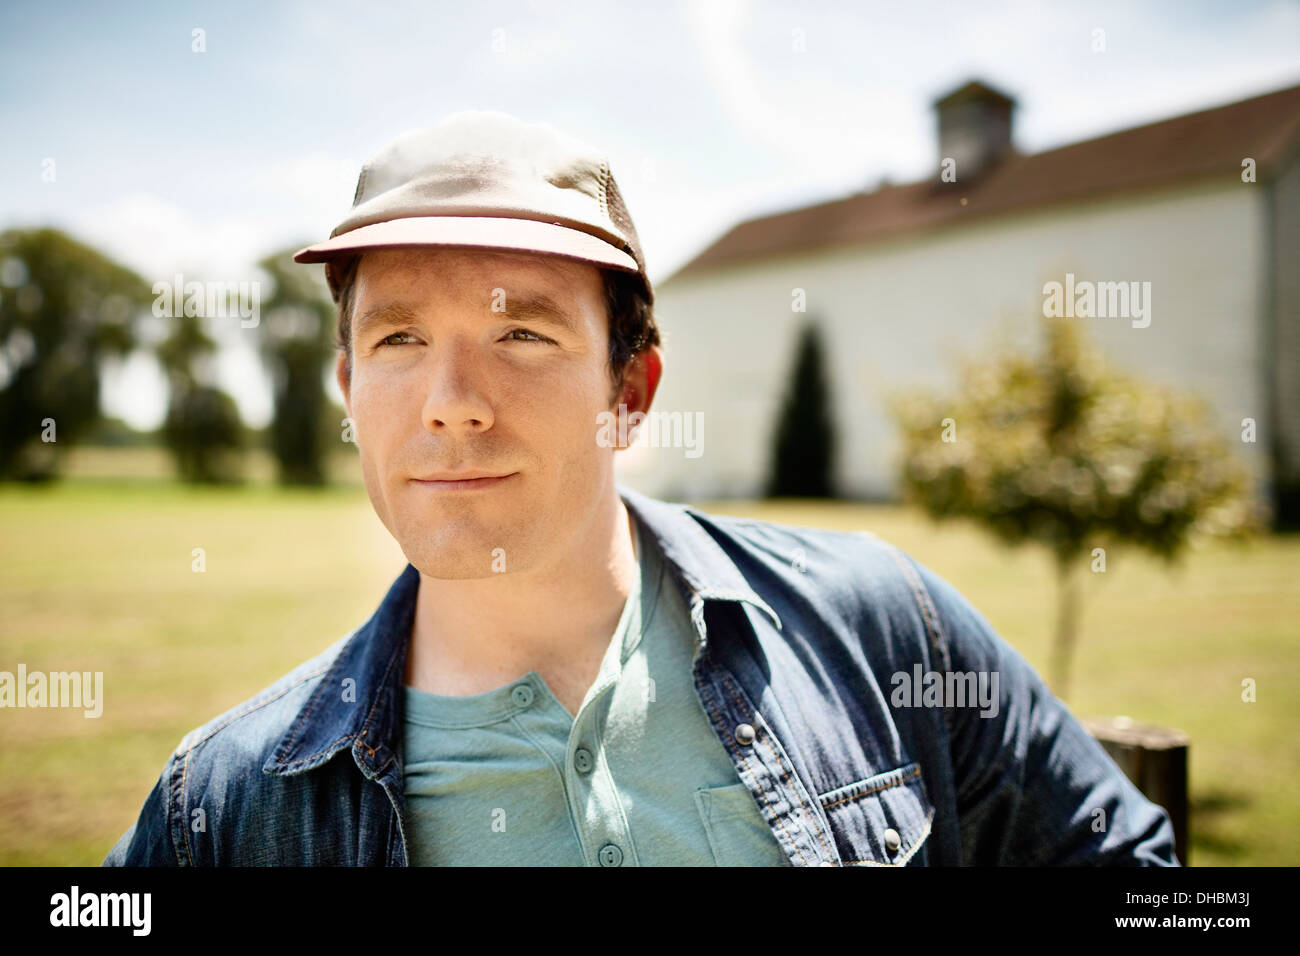 A man in a baseball cap on an organic farm in New York State. - Stock Image